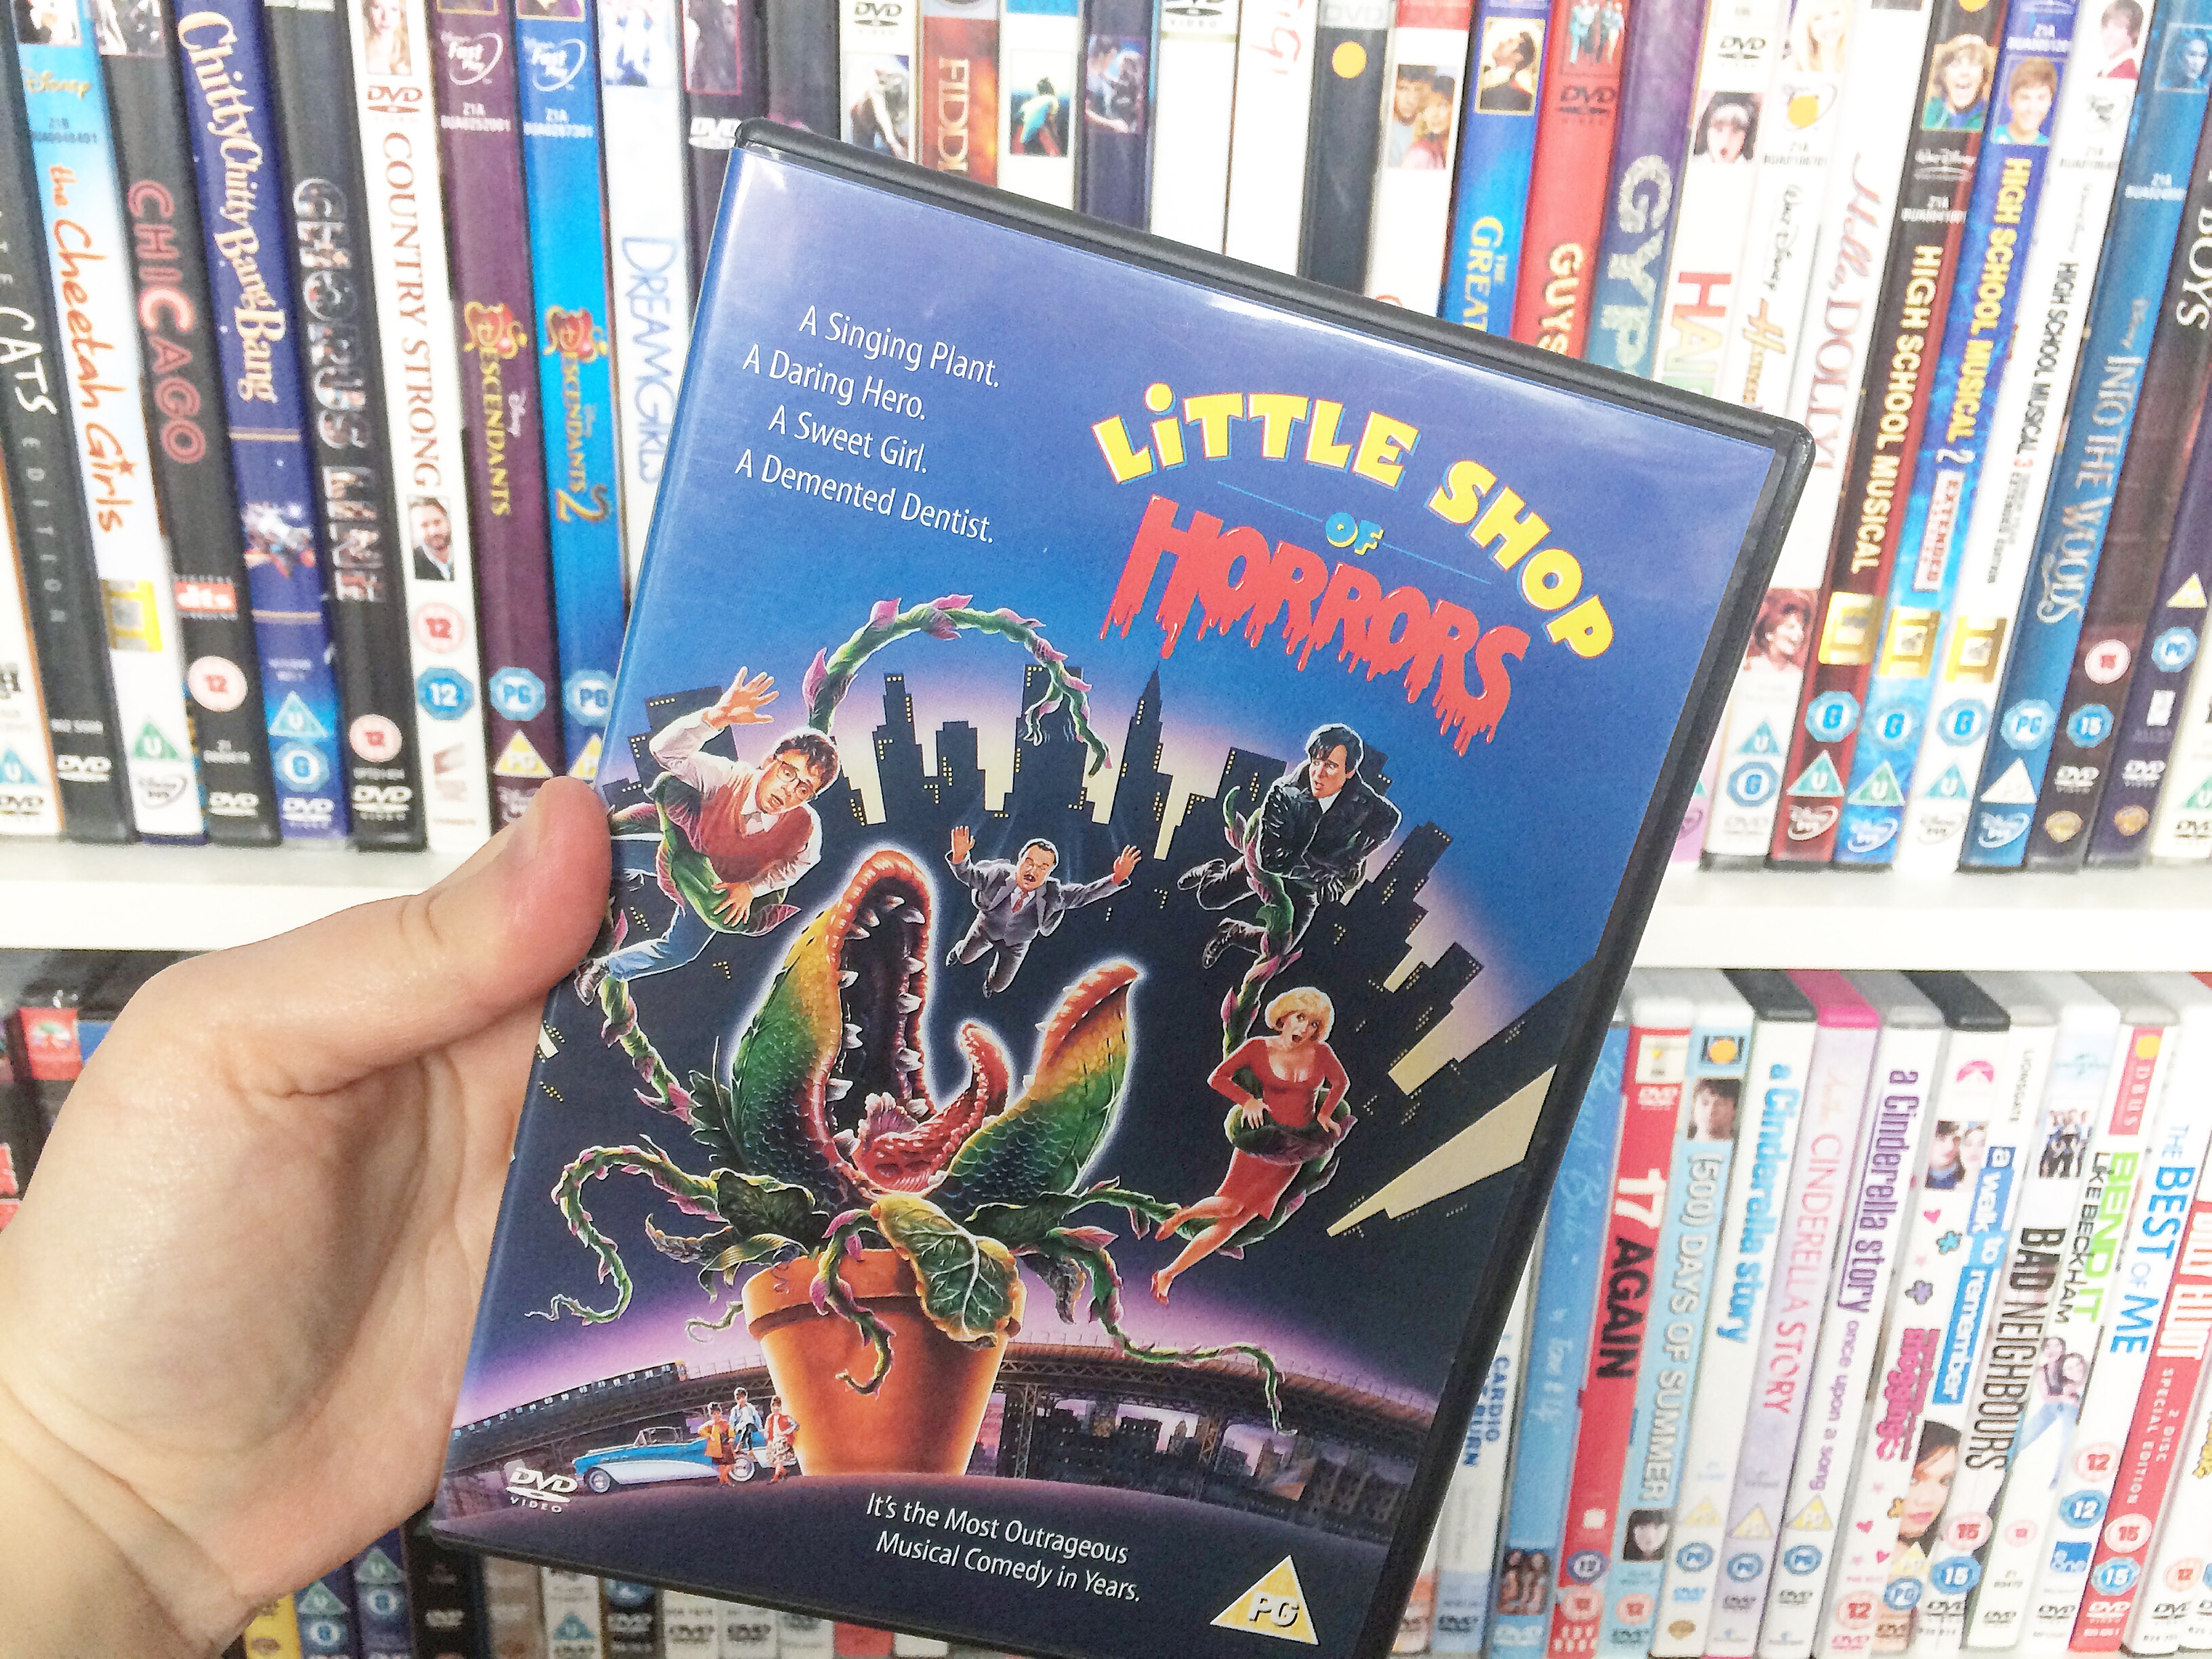 favourite-movie-musicals-little-shop-of-horrors